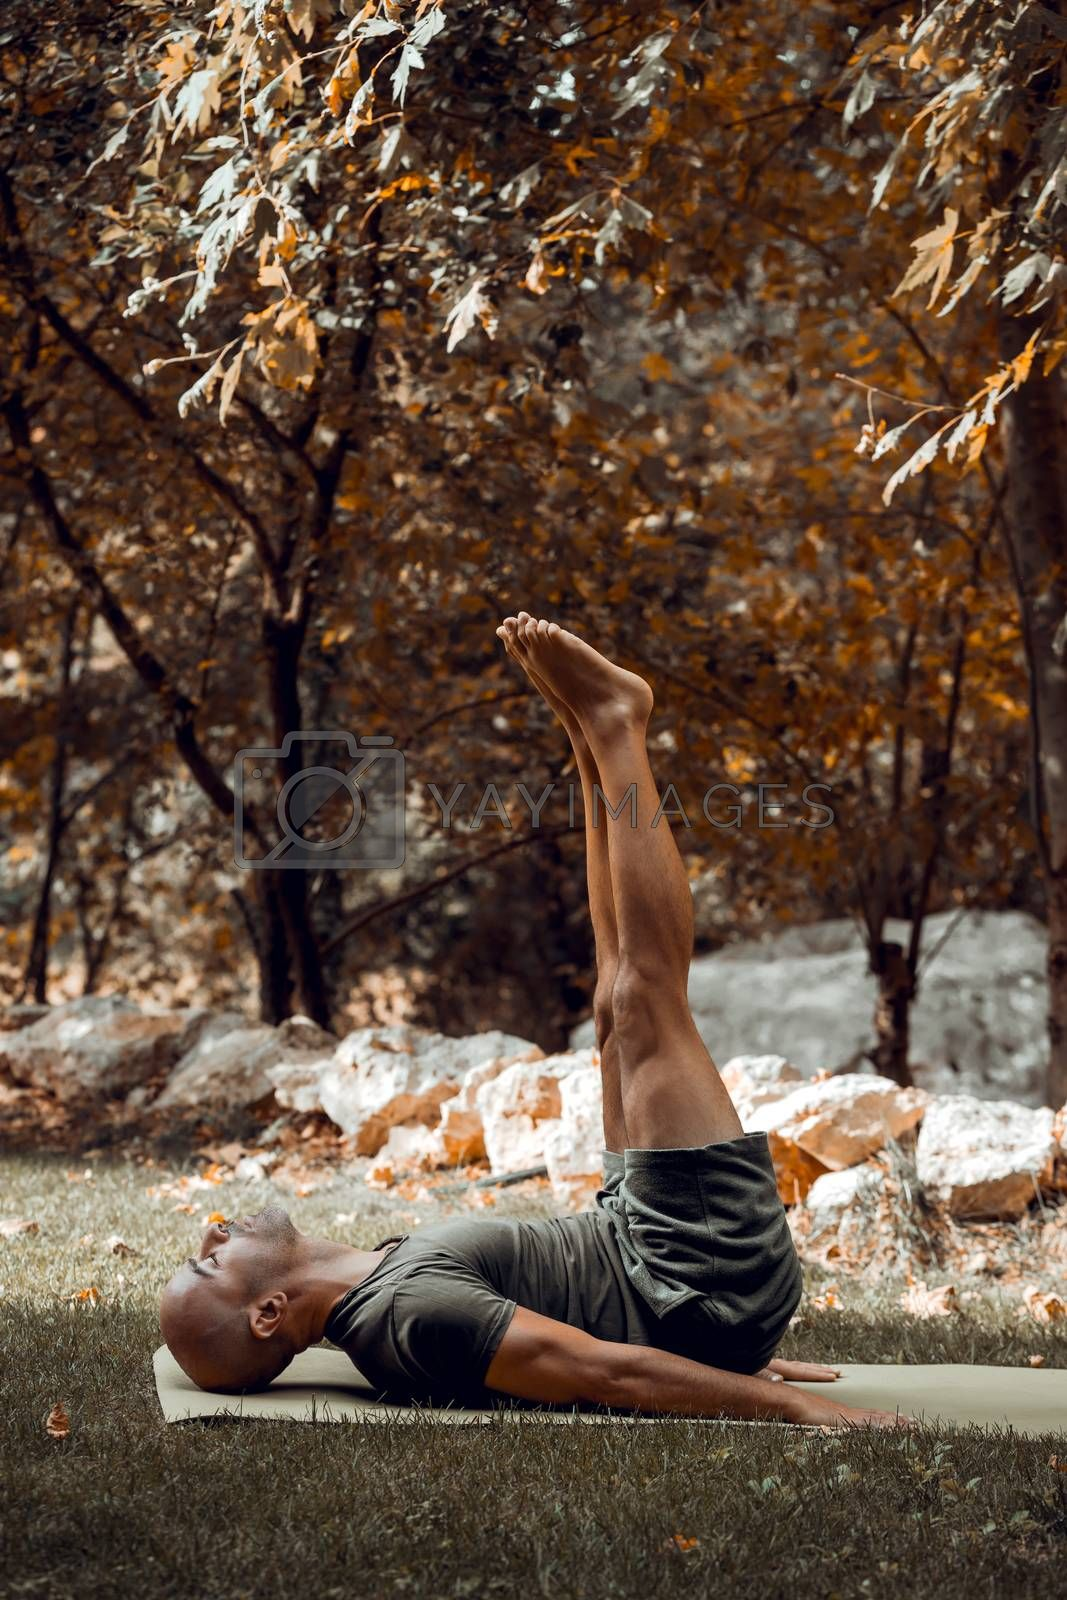 Handsome Sportive Man Doing Yoga in Autumnal Park. Athletic Guy Training Outdoors. Enjoying Peaceful Workout. Healthy Lifestyle.